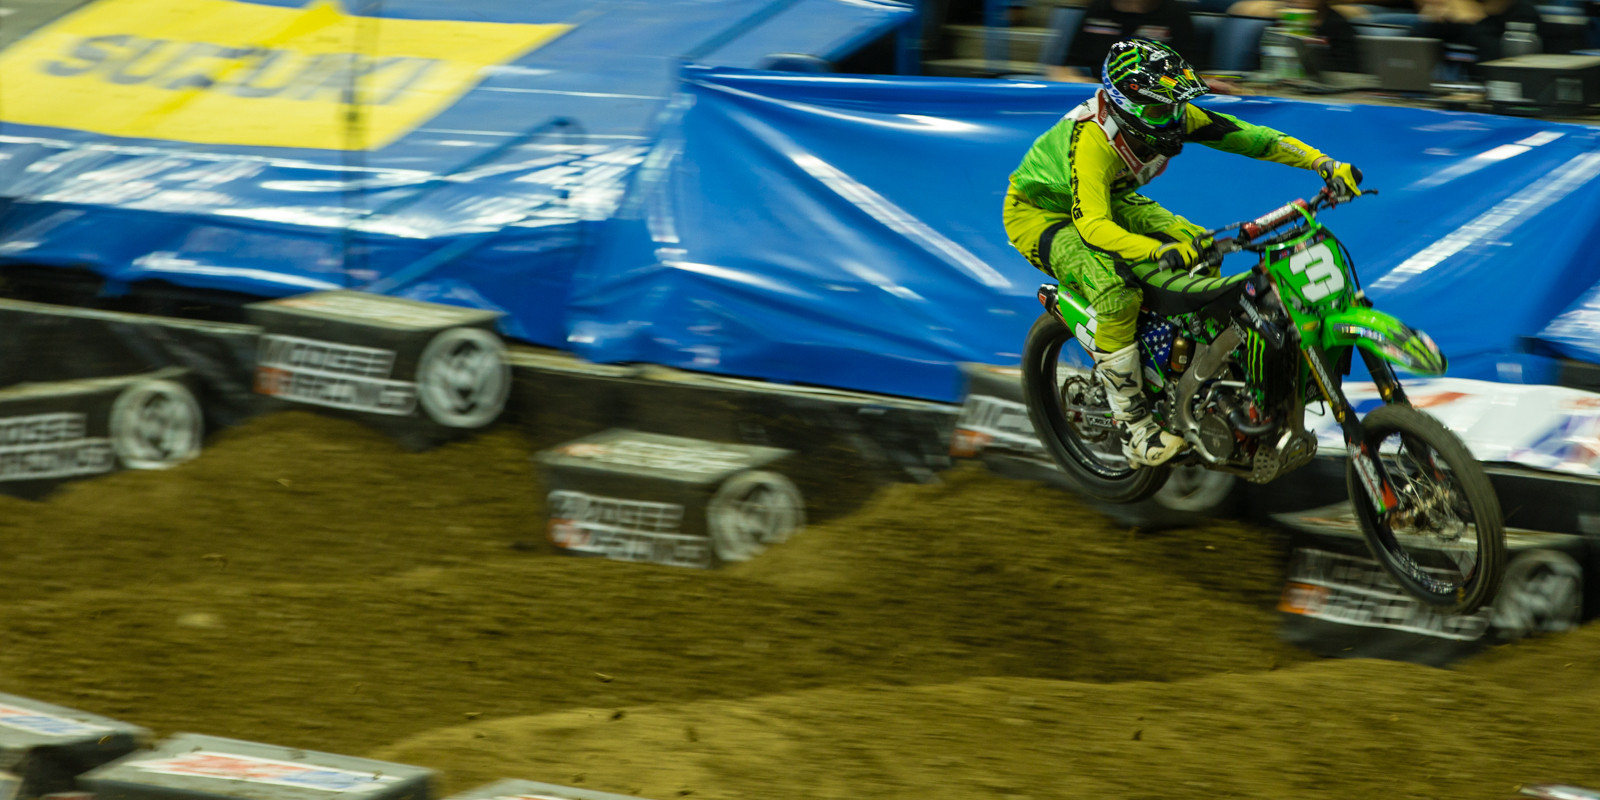 Gavin Faith - Photo Gallery: Ontario Arenacross - Saturday Night - Motocross Pictures - Vital MX